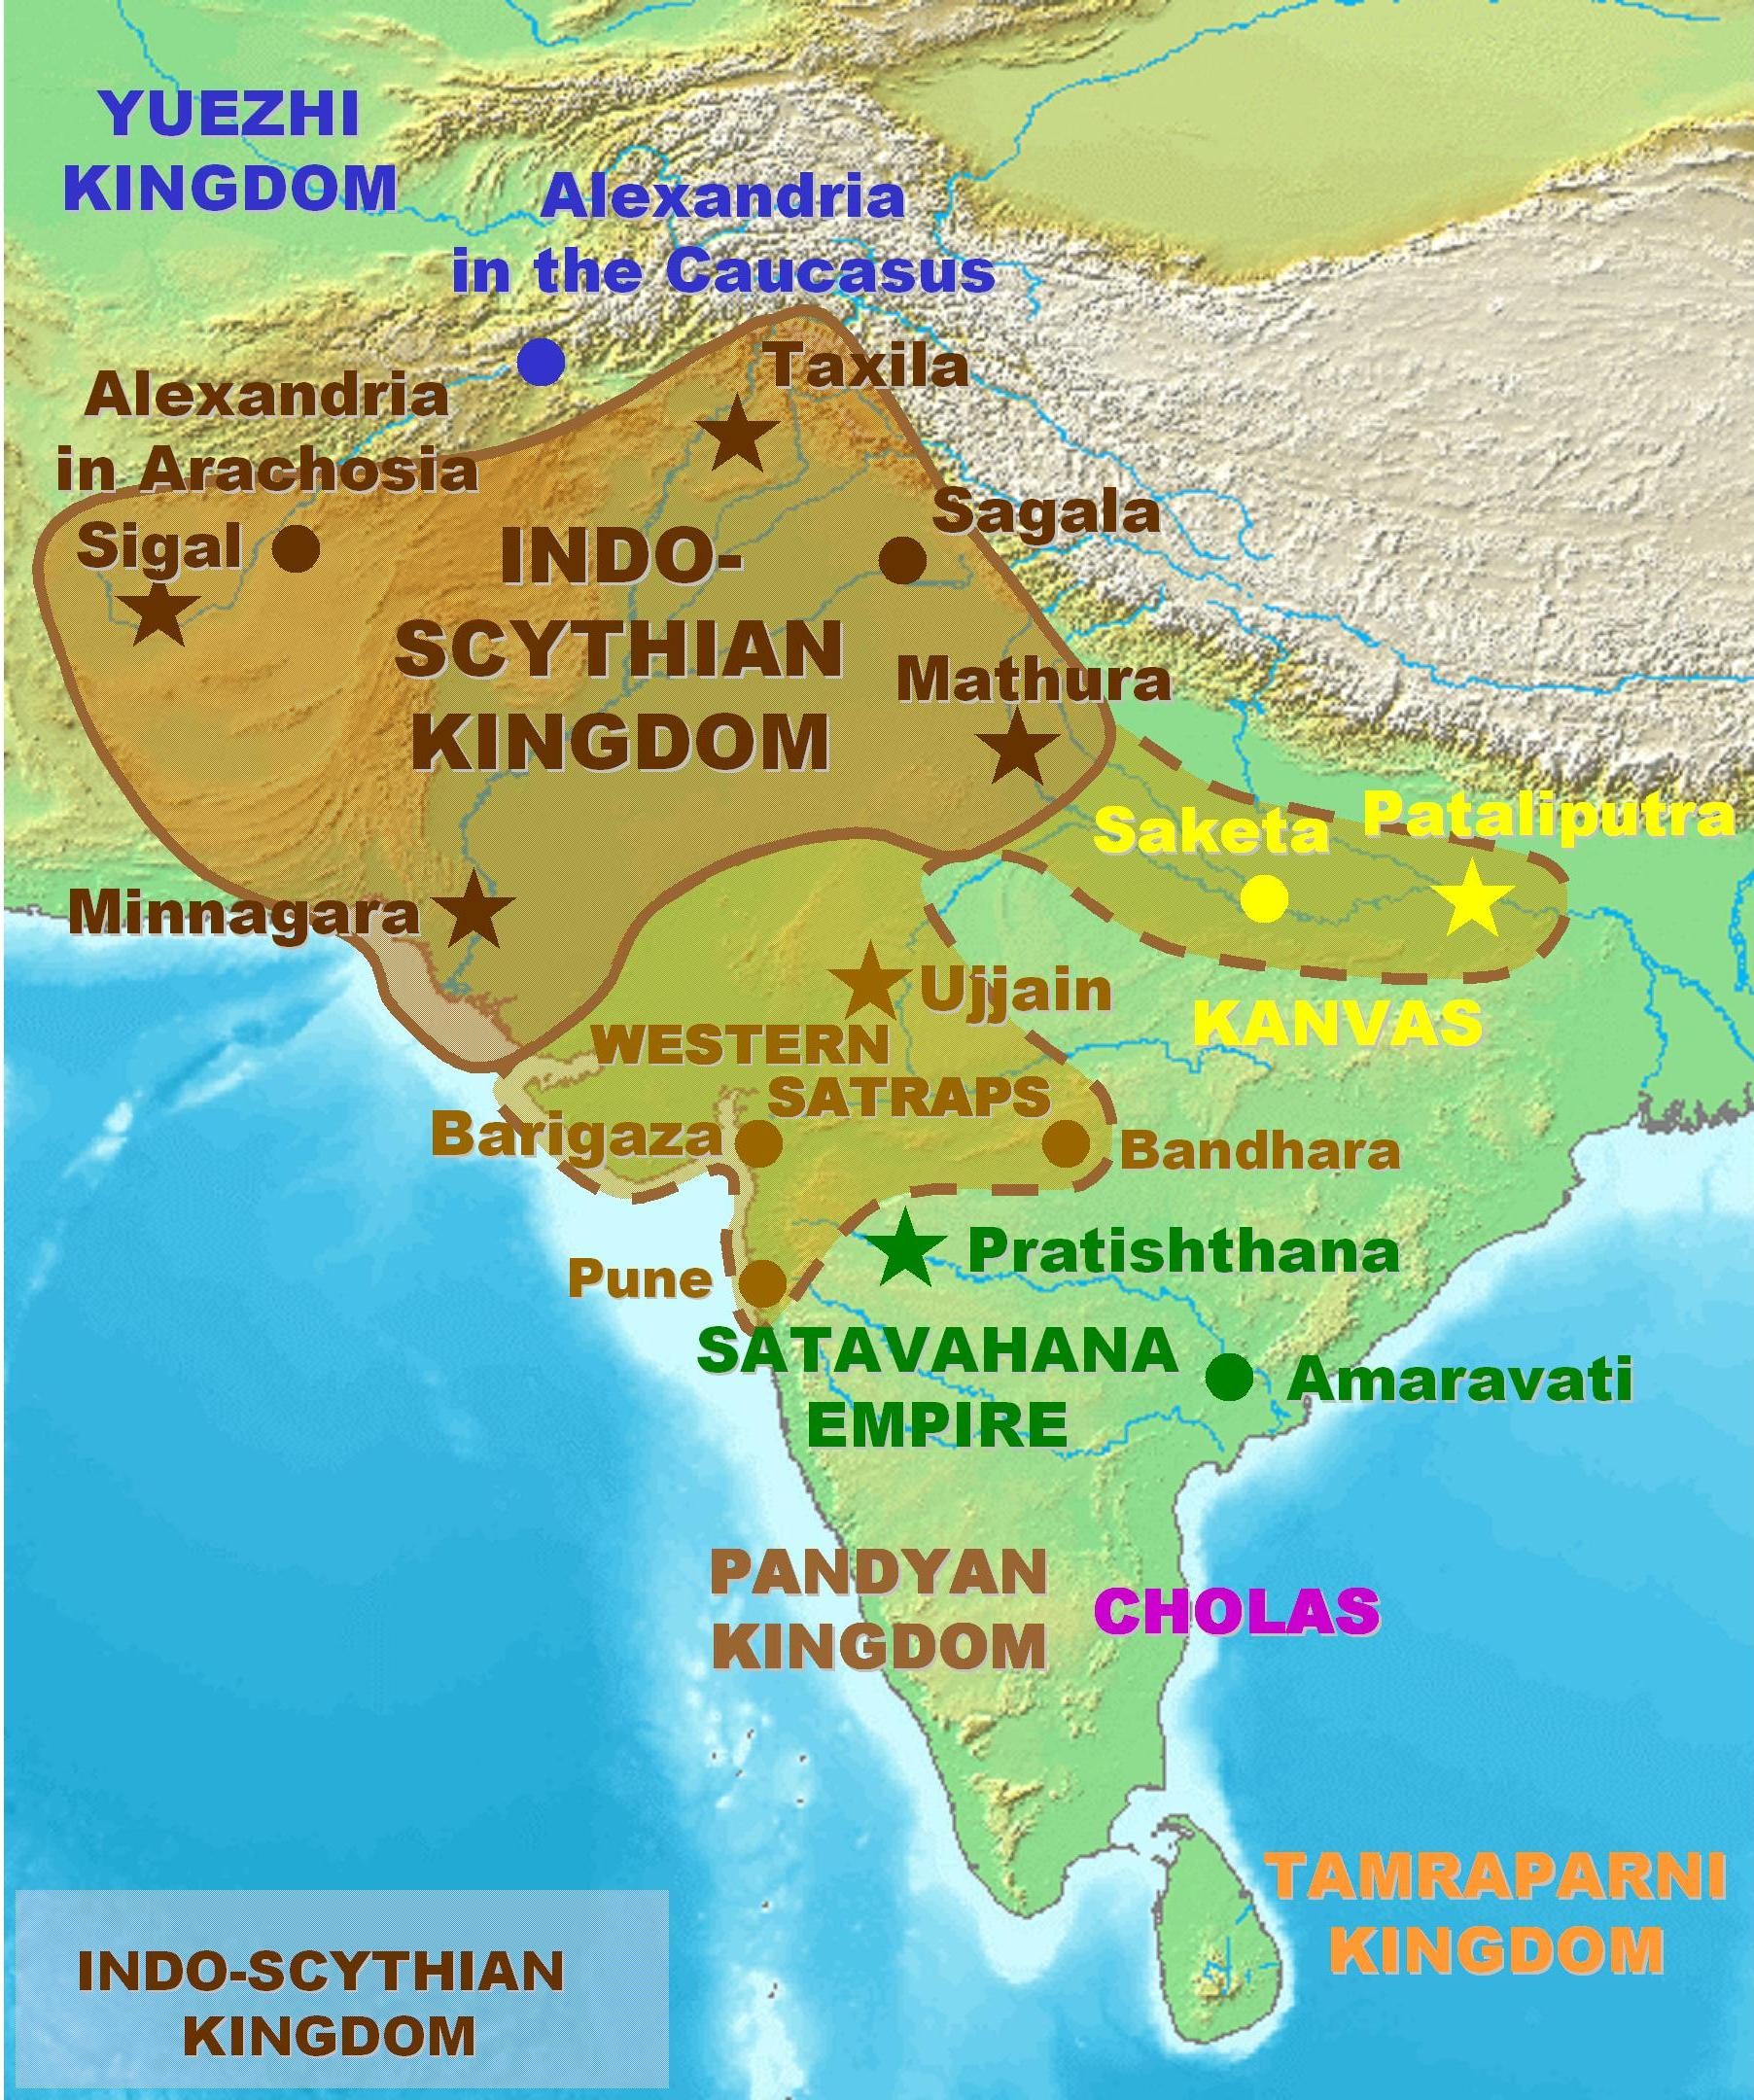 Indo-Scythian Kingdom from Wikipedia